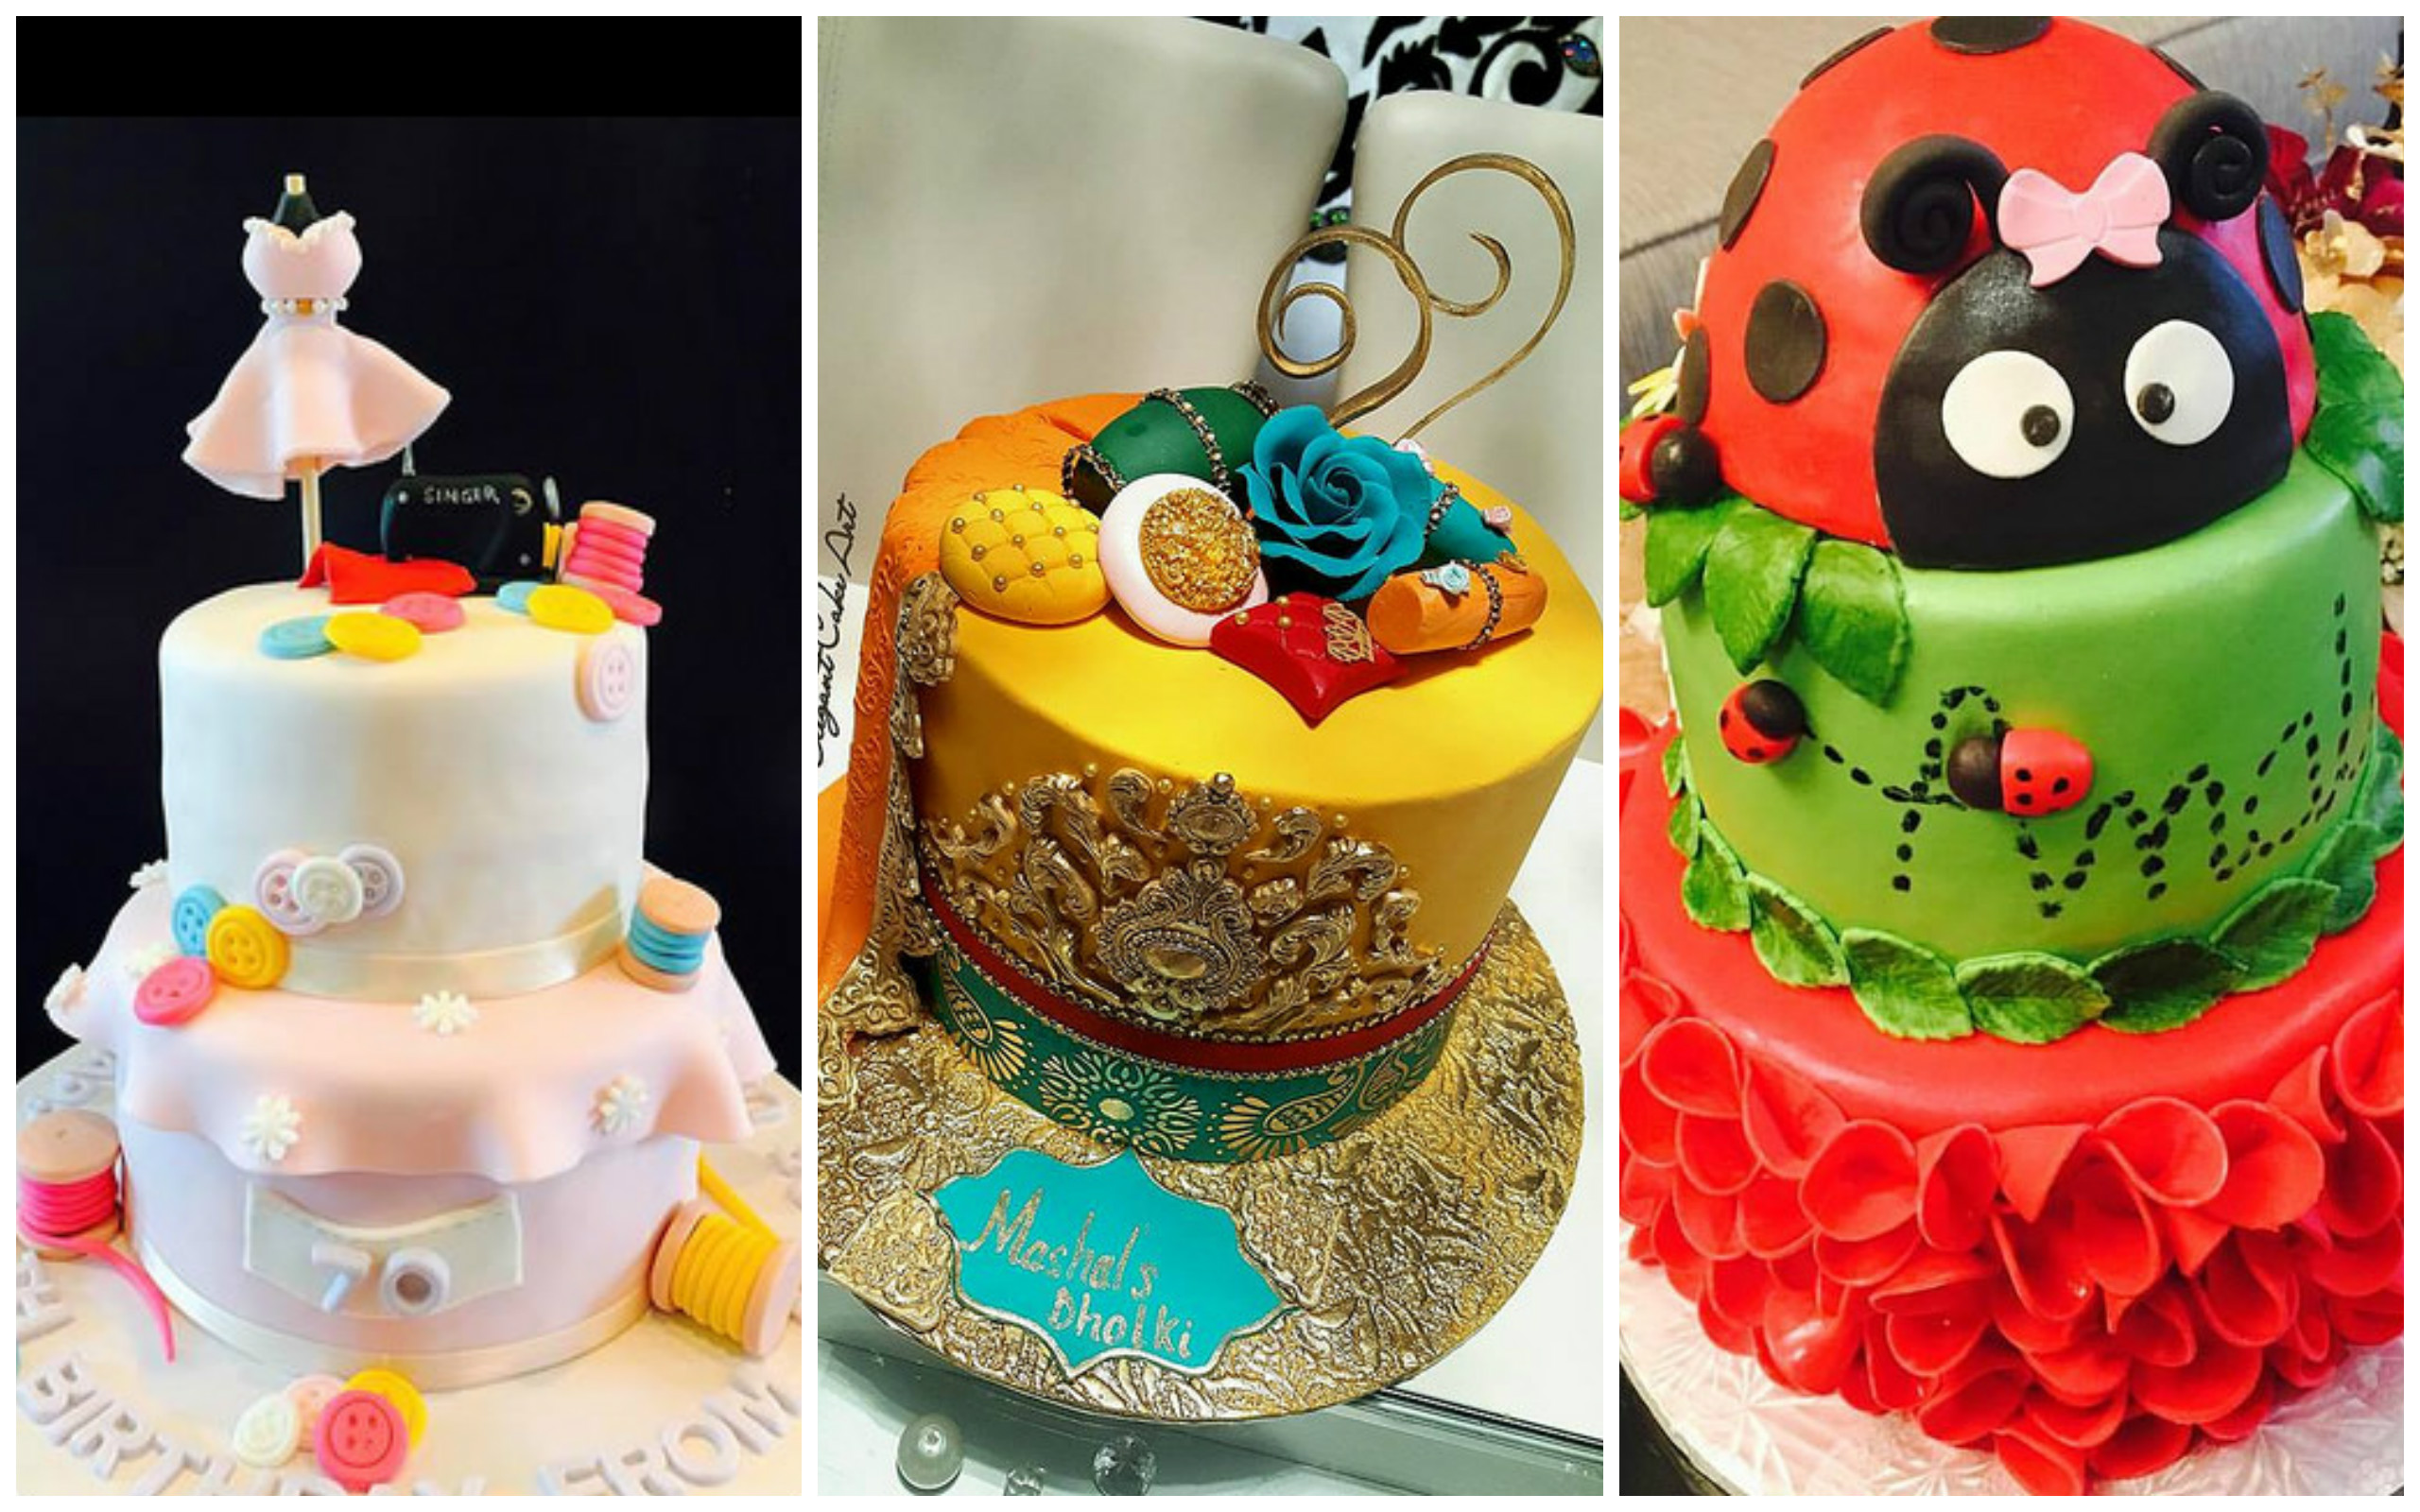 Best Cake Artist In The World : Competition: Best Choice Cake Artist In The World